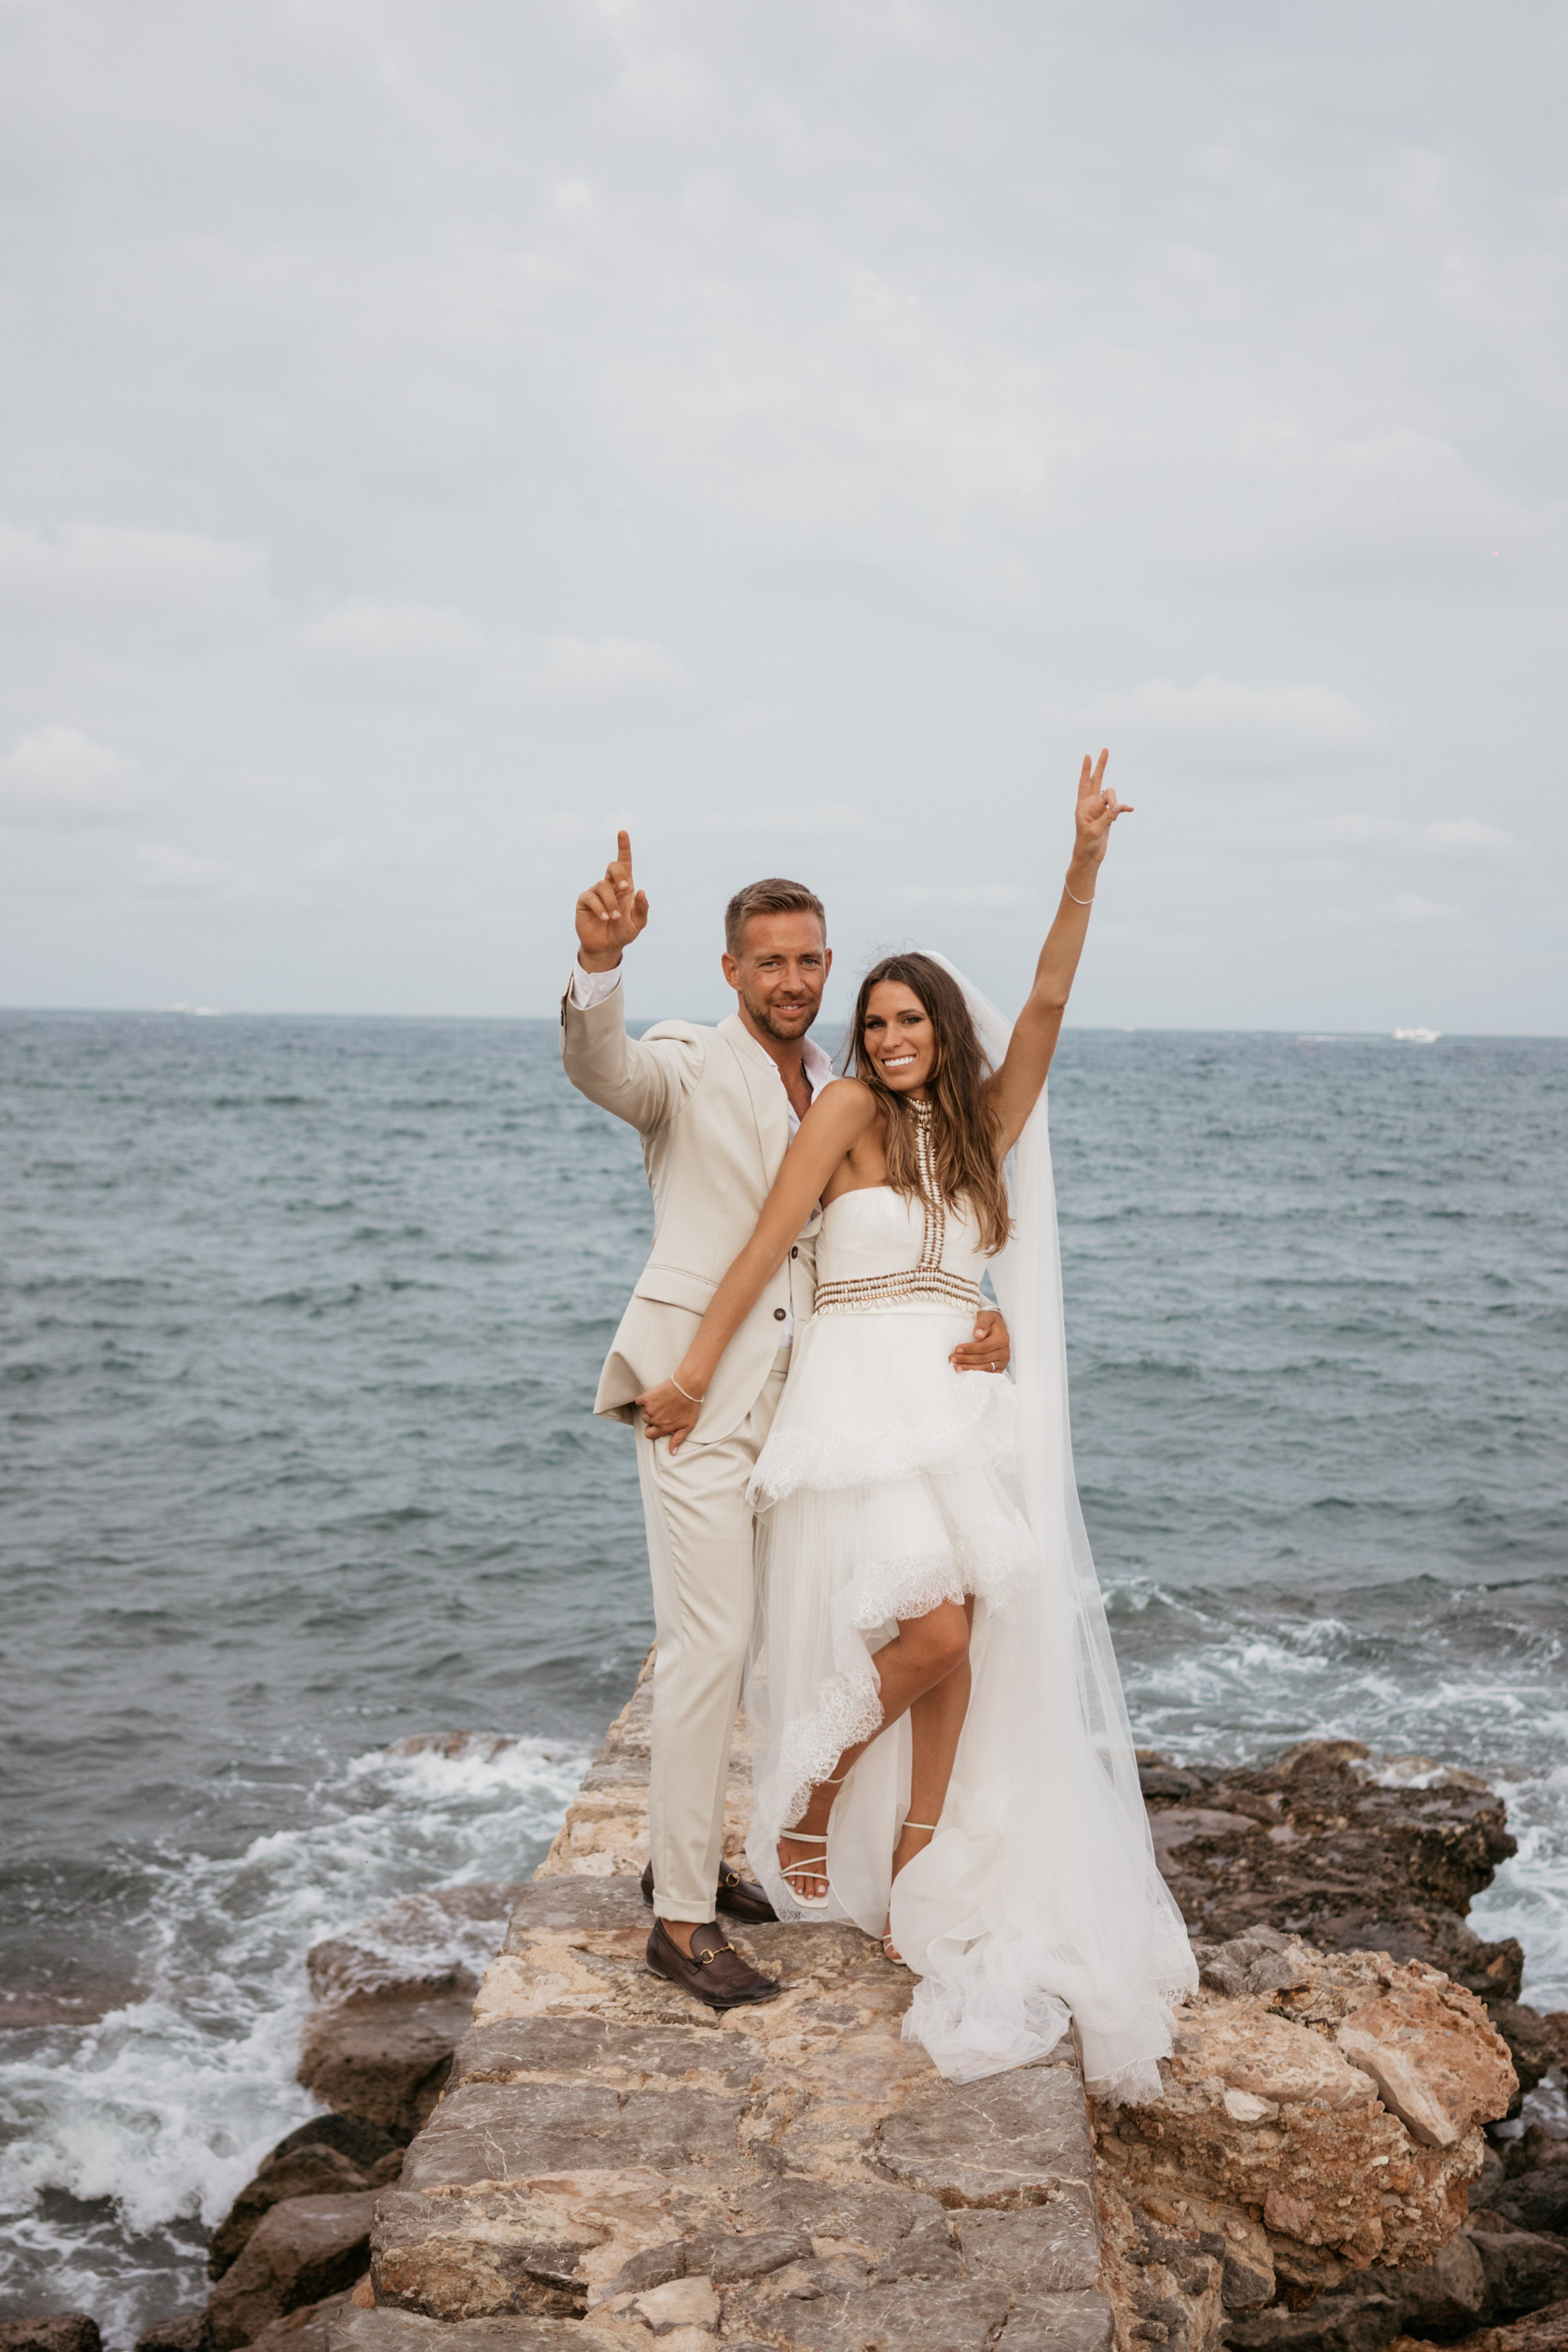 natural wedding photo destination la escollera ibiza 0088 1